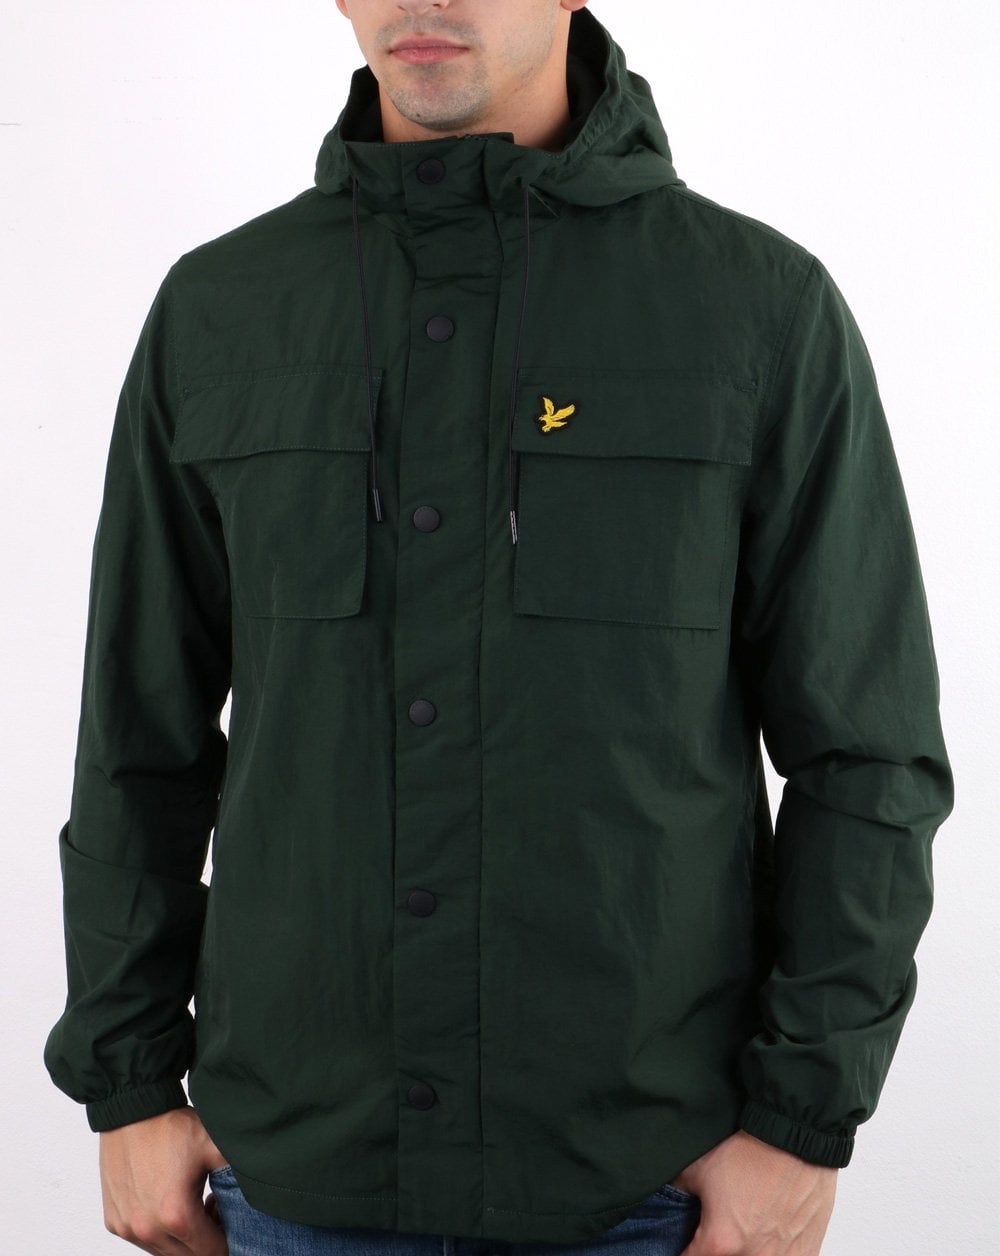 lyle and scott pocket jacket jade 80s casual classics. Black Bedroom Furniture Sets. Home Design Ideas